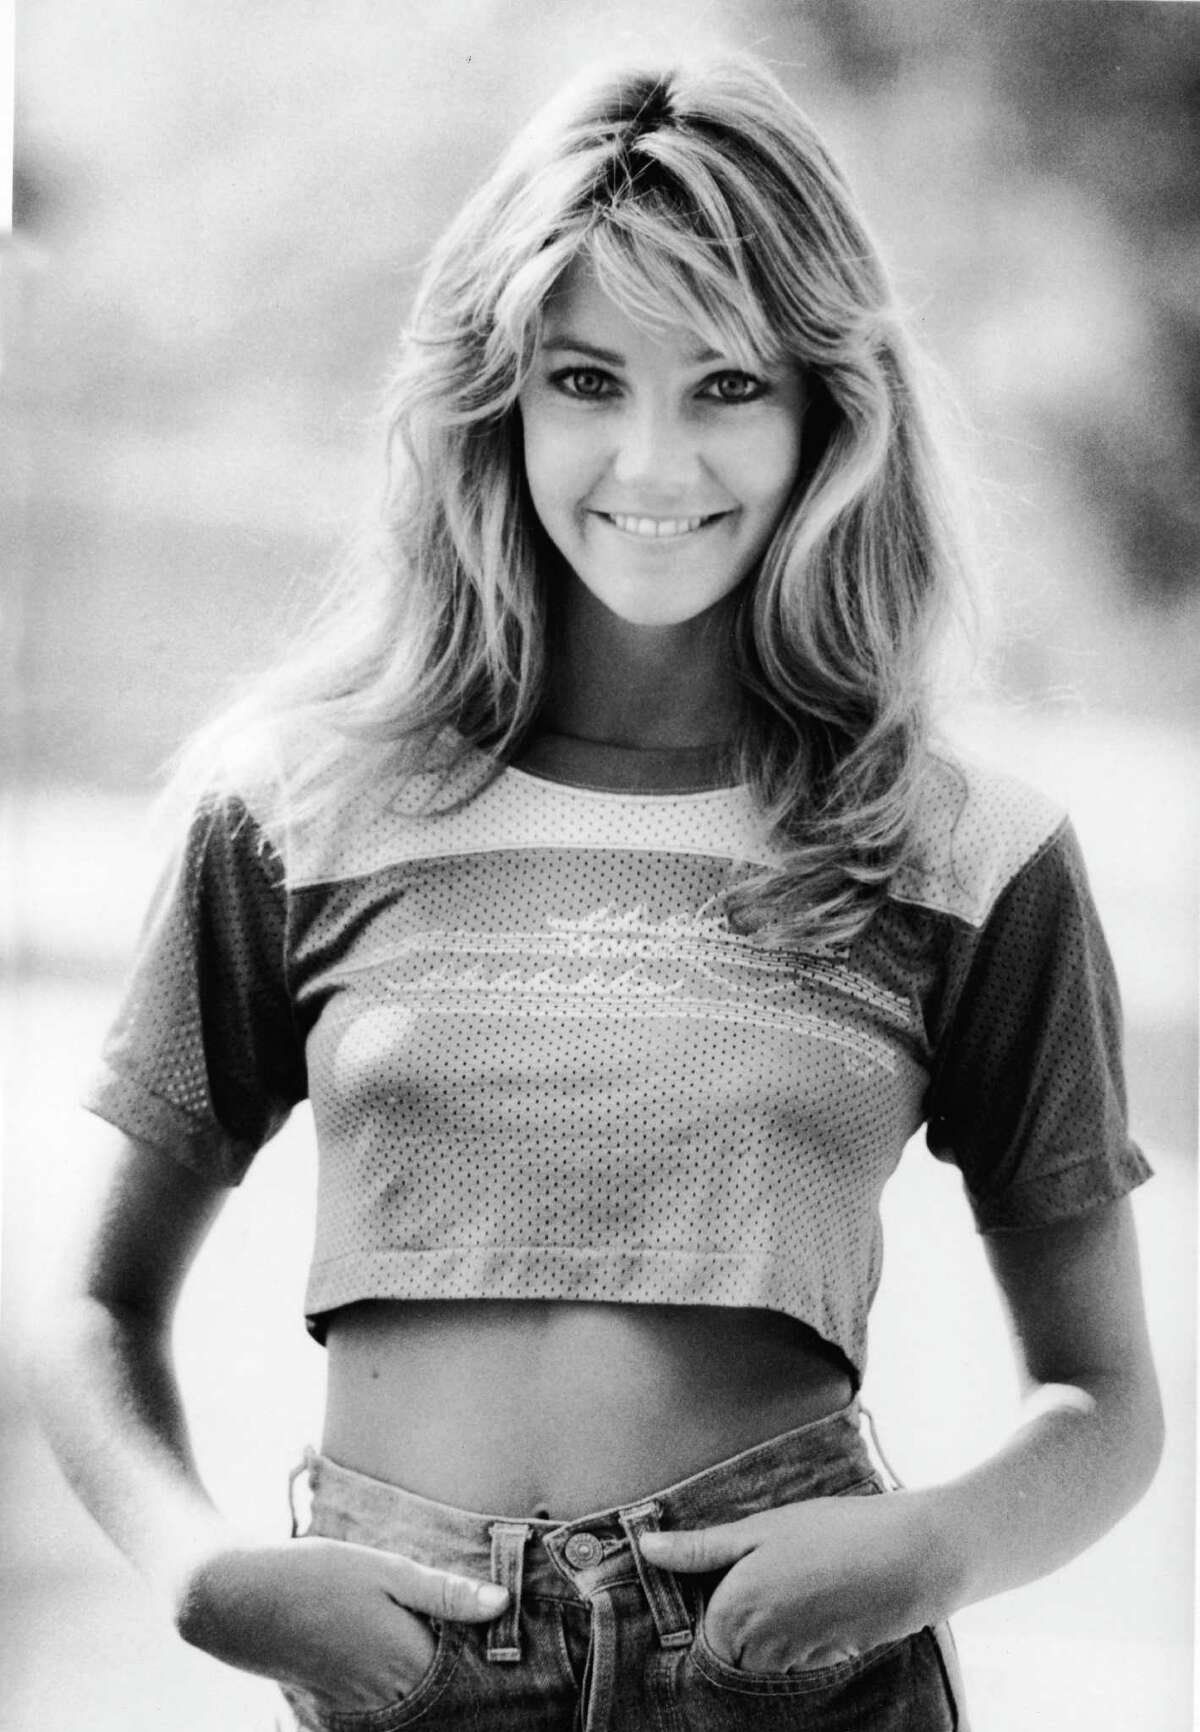 Welcome to the '80s, a great time of actresses with big hair, shoulder pads and ripped sweatshirts. We start with Heather Locklear, best known as catty Amanda Woodward from